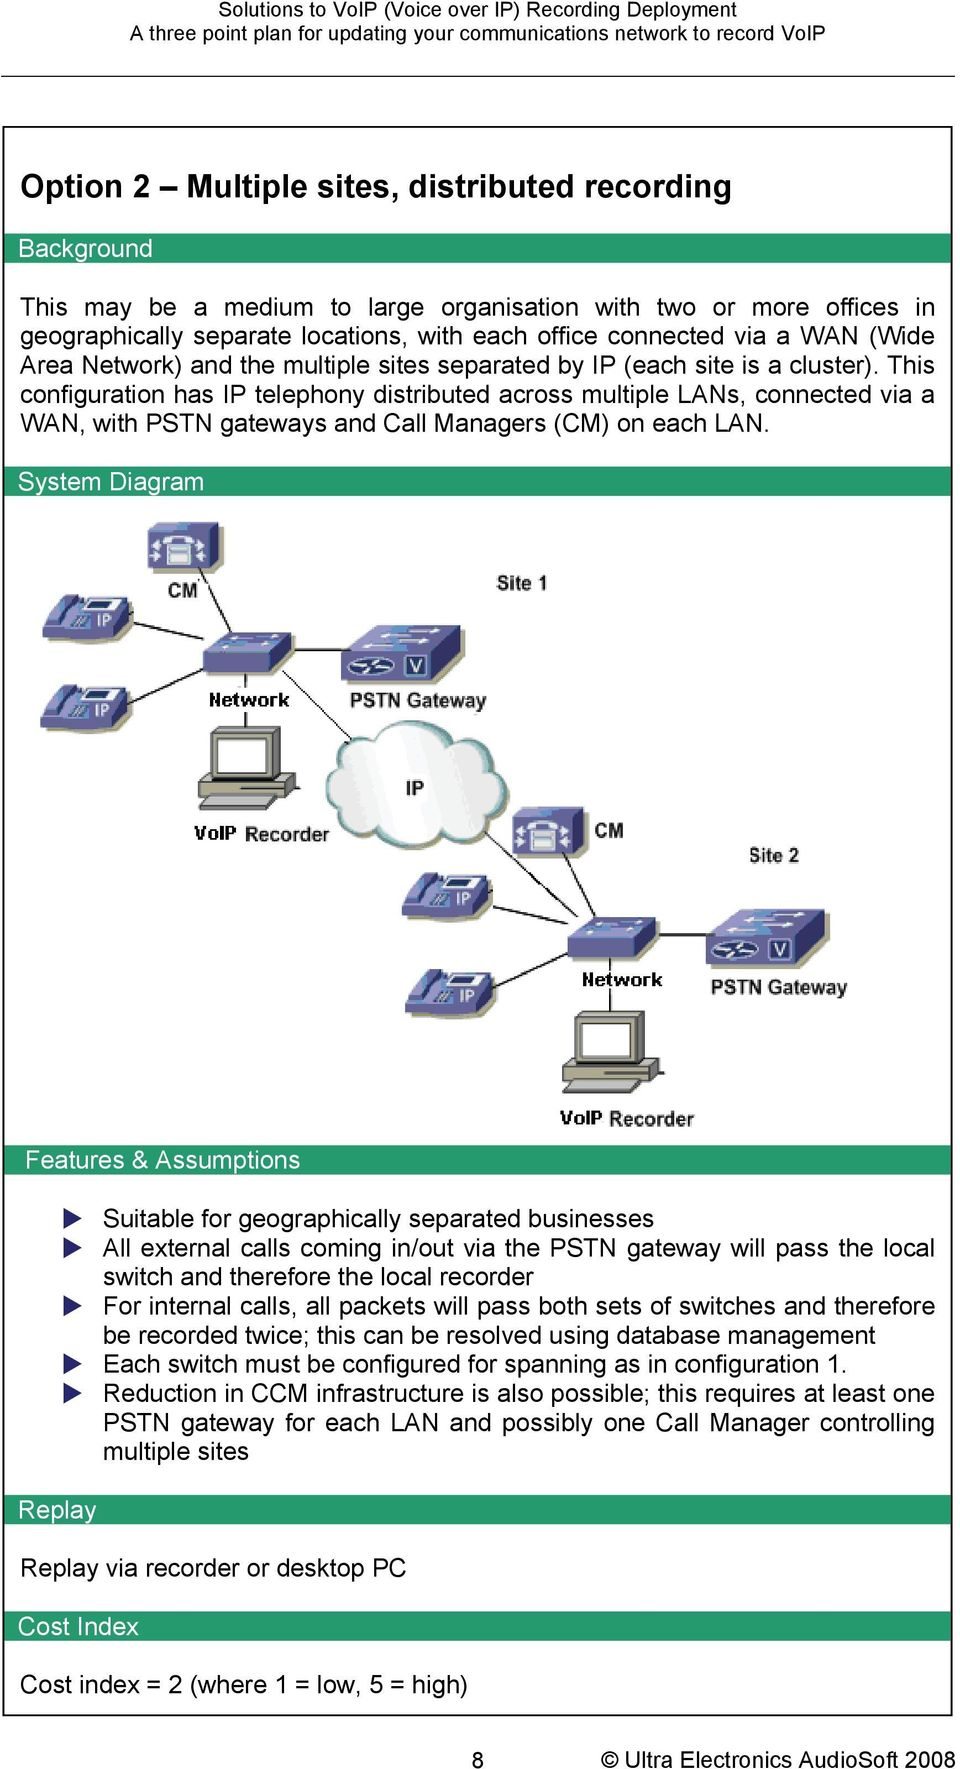 by IP (each site is a cluster). This configuration has IP telephony distributed across multiple LANs, connected via a WAN, with PSTN gateways and Call Managers (CM) on each LAN...System Diagram.